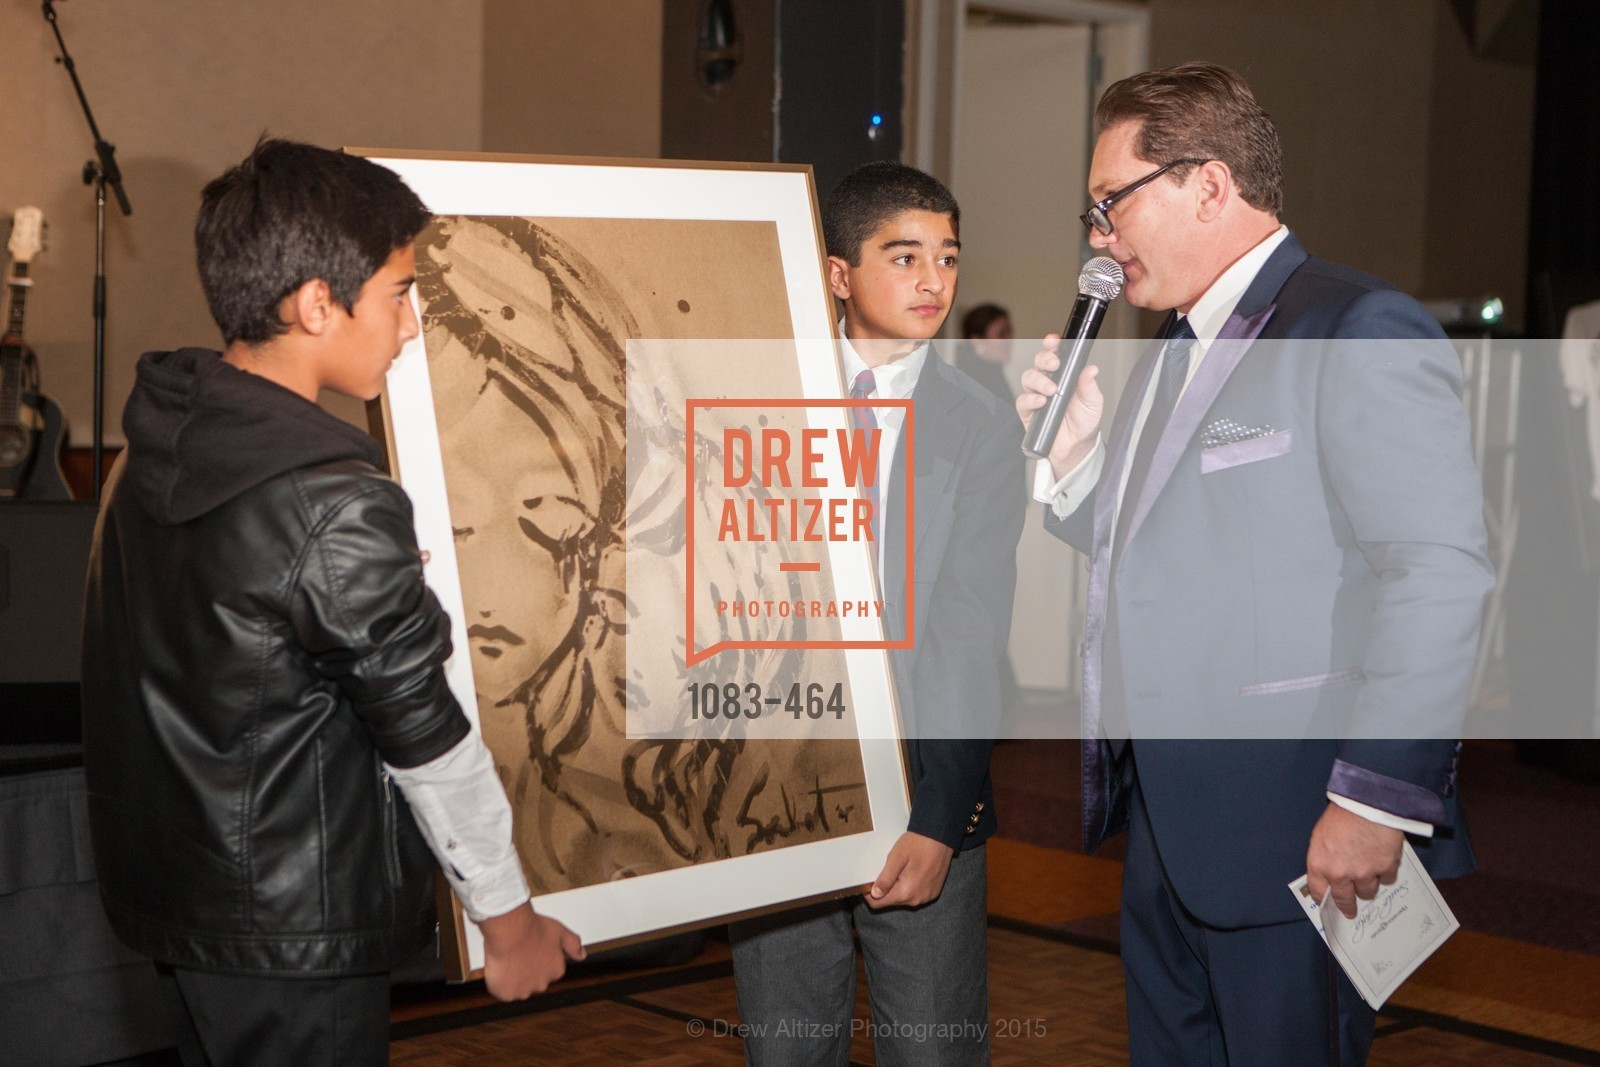 Nicholas Farzaneh, Liam Mayclem, Operation Smile Presents THE SAN FRANCISCO 2015 SMILE GALA, InterContinental Hotel, November 7th, 2015,Drew Altizer, Drew Altizer Photography, full-service agency, private events, San Francisco photographer, photographer california